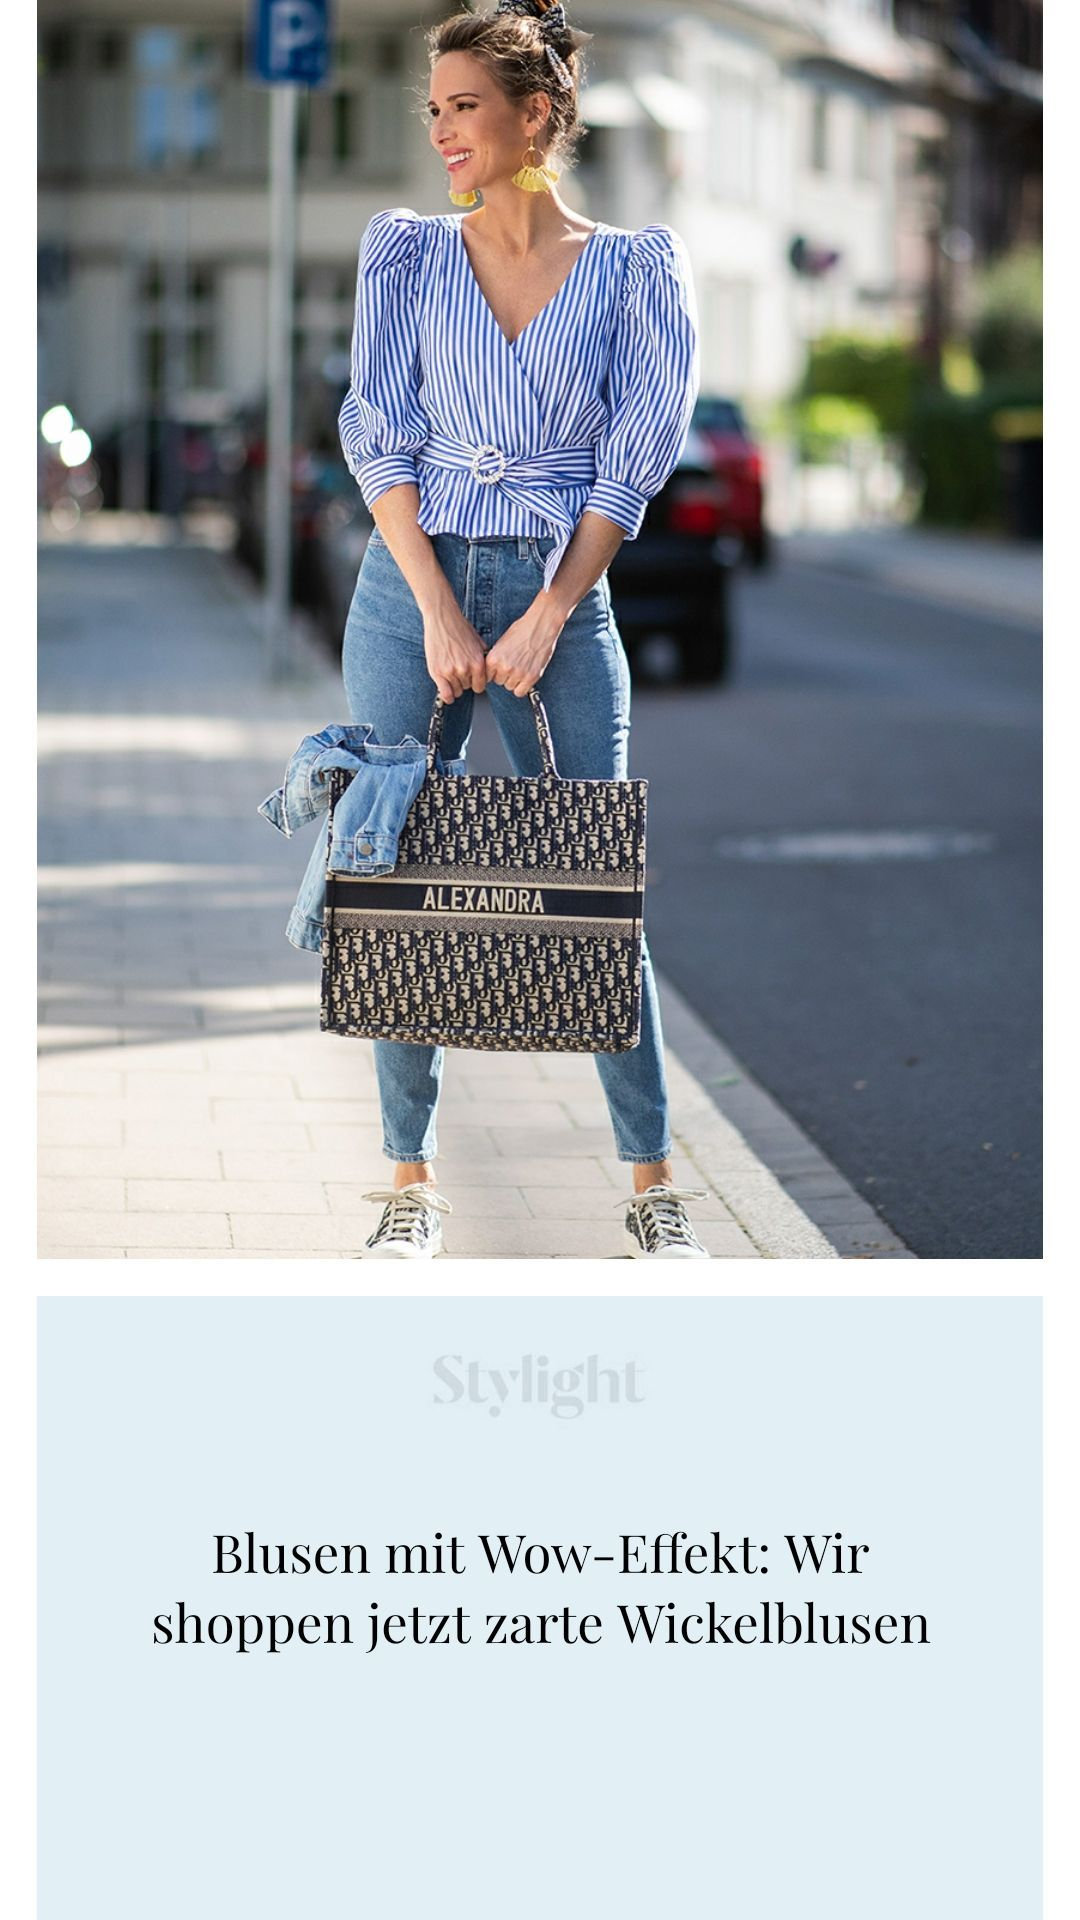 467 Best Stylight ♥ Outfits für den Frühling images in 2020